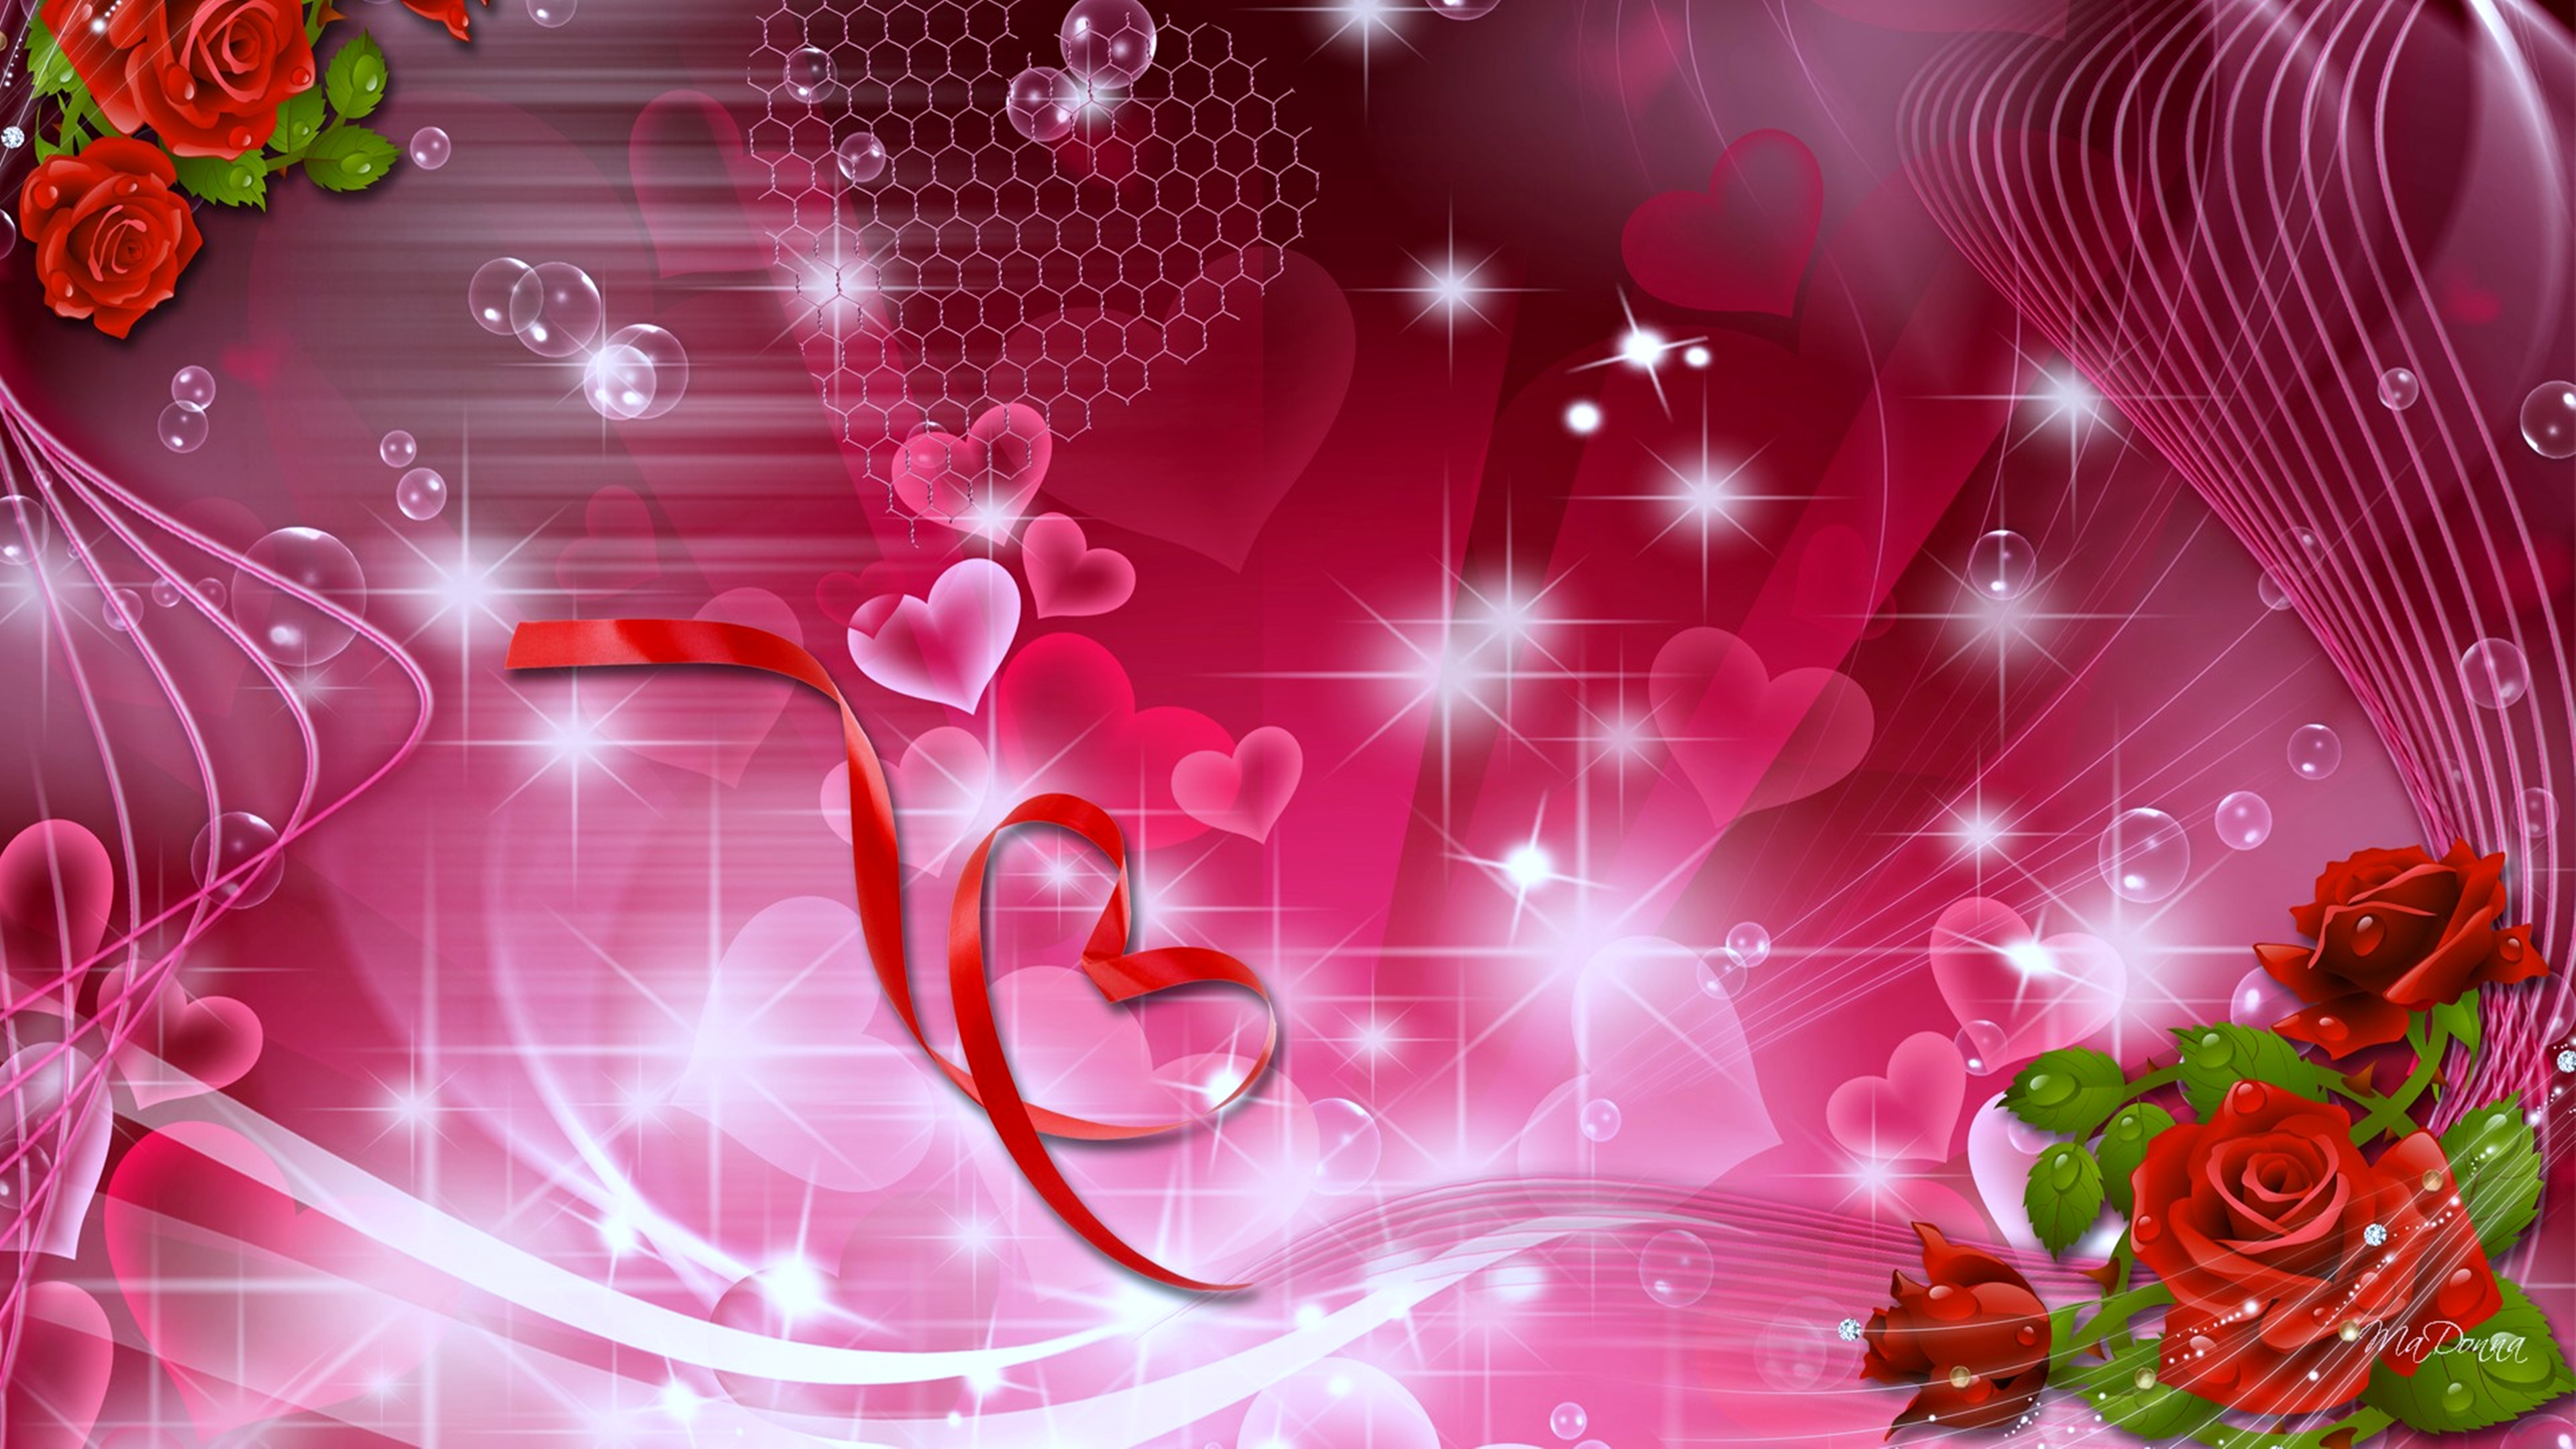 Romantic Background 4k Ultra HD Wallpaper And Image